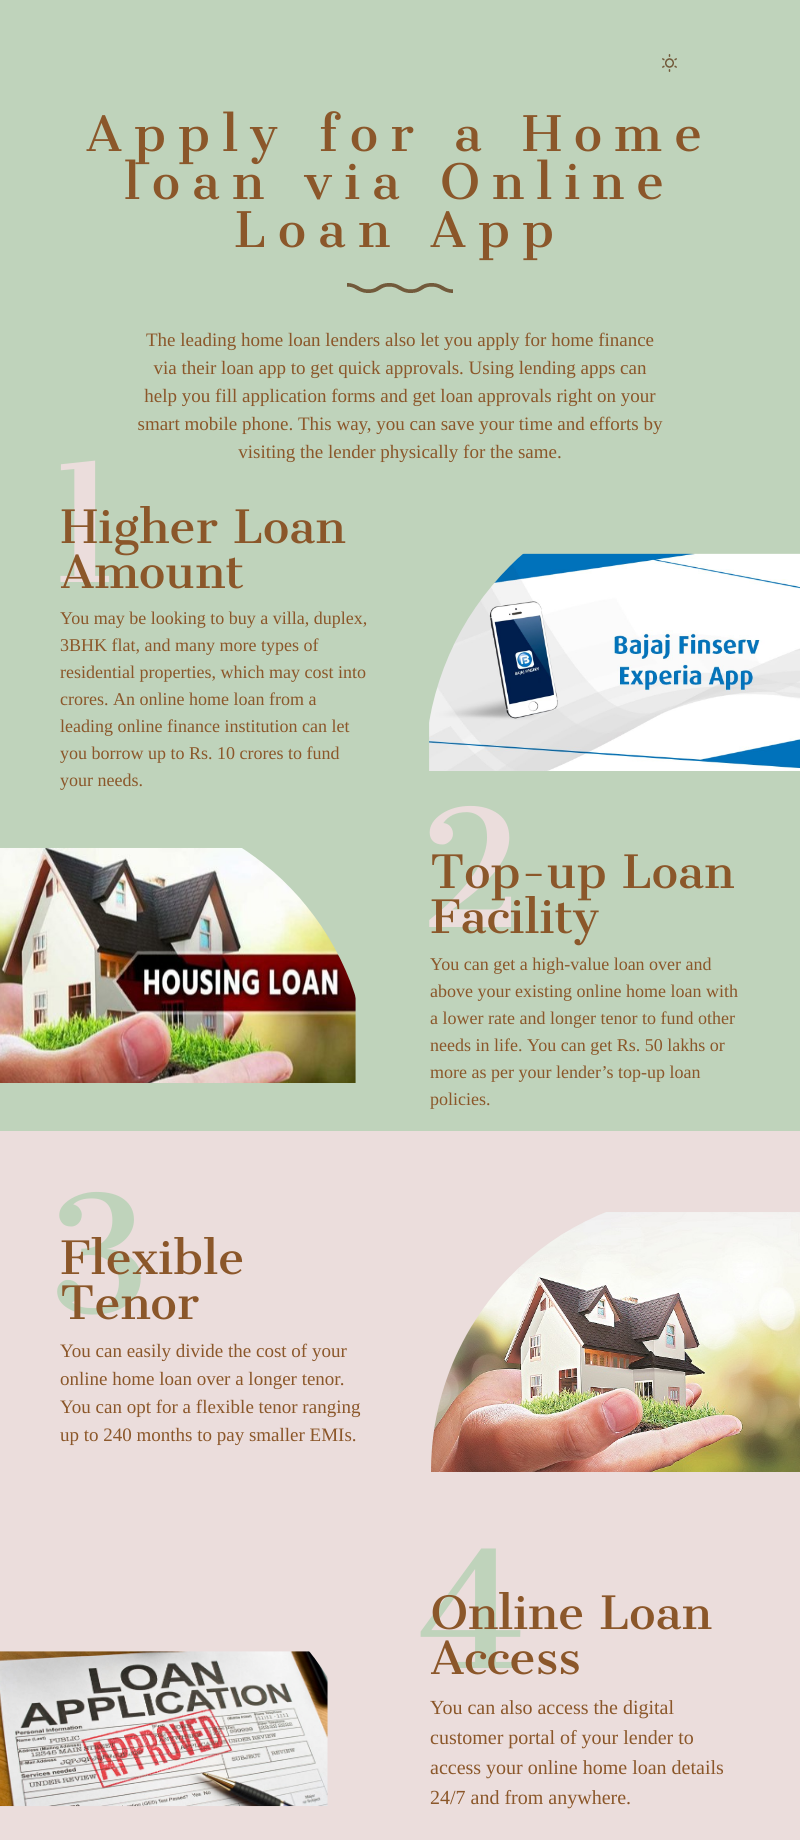 Apply For A Home Loan Via Online Loan App In 2020 App Online Loans Instant Loans